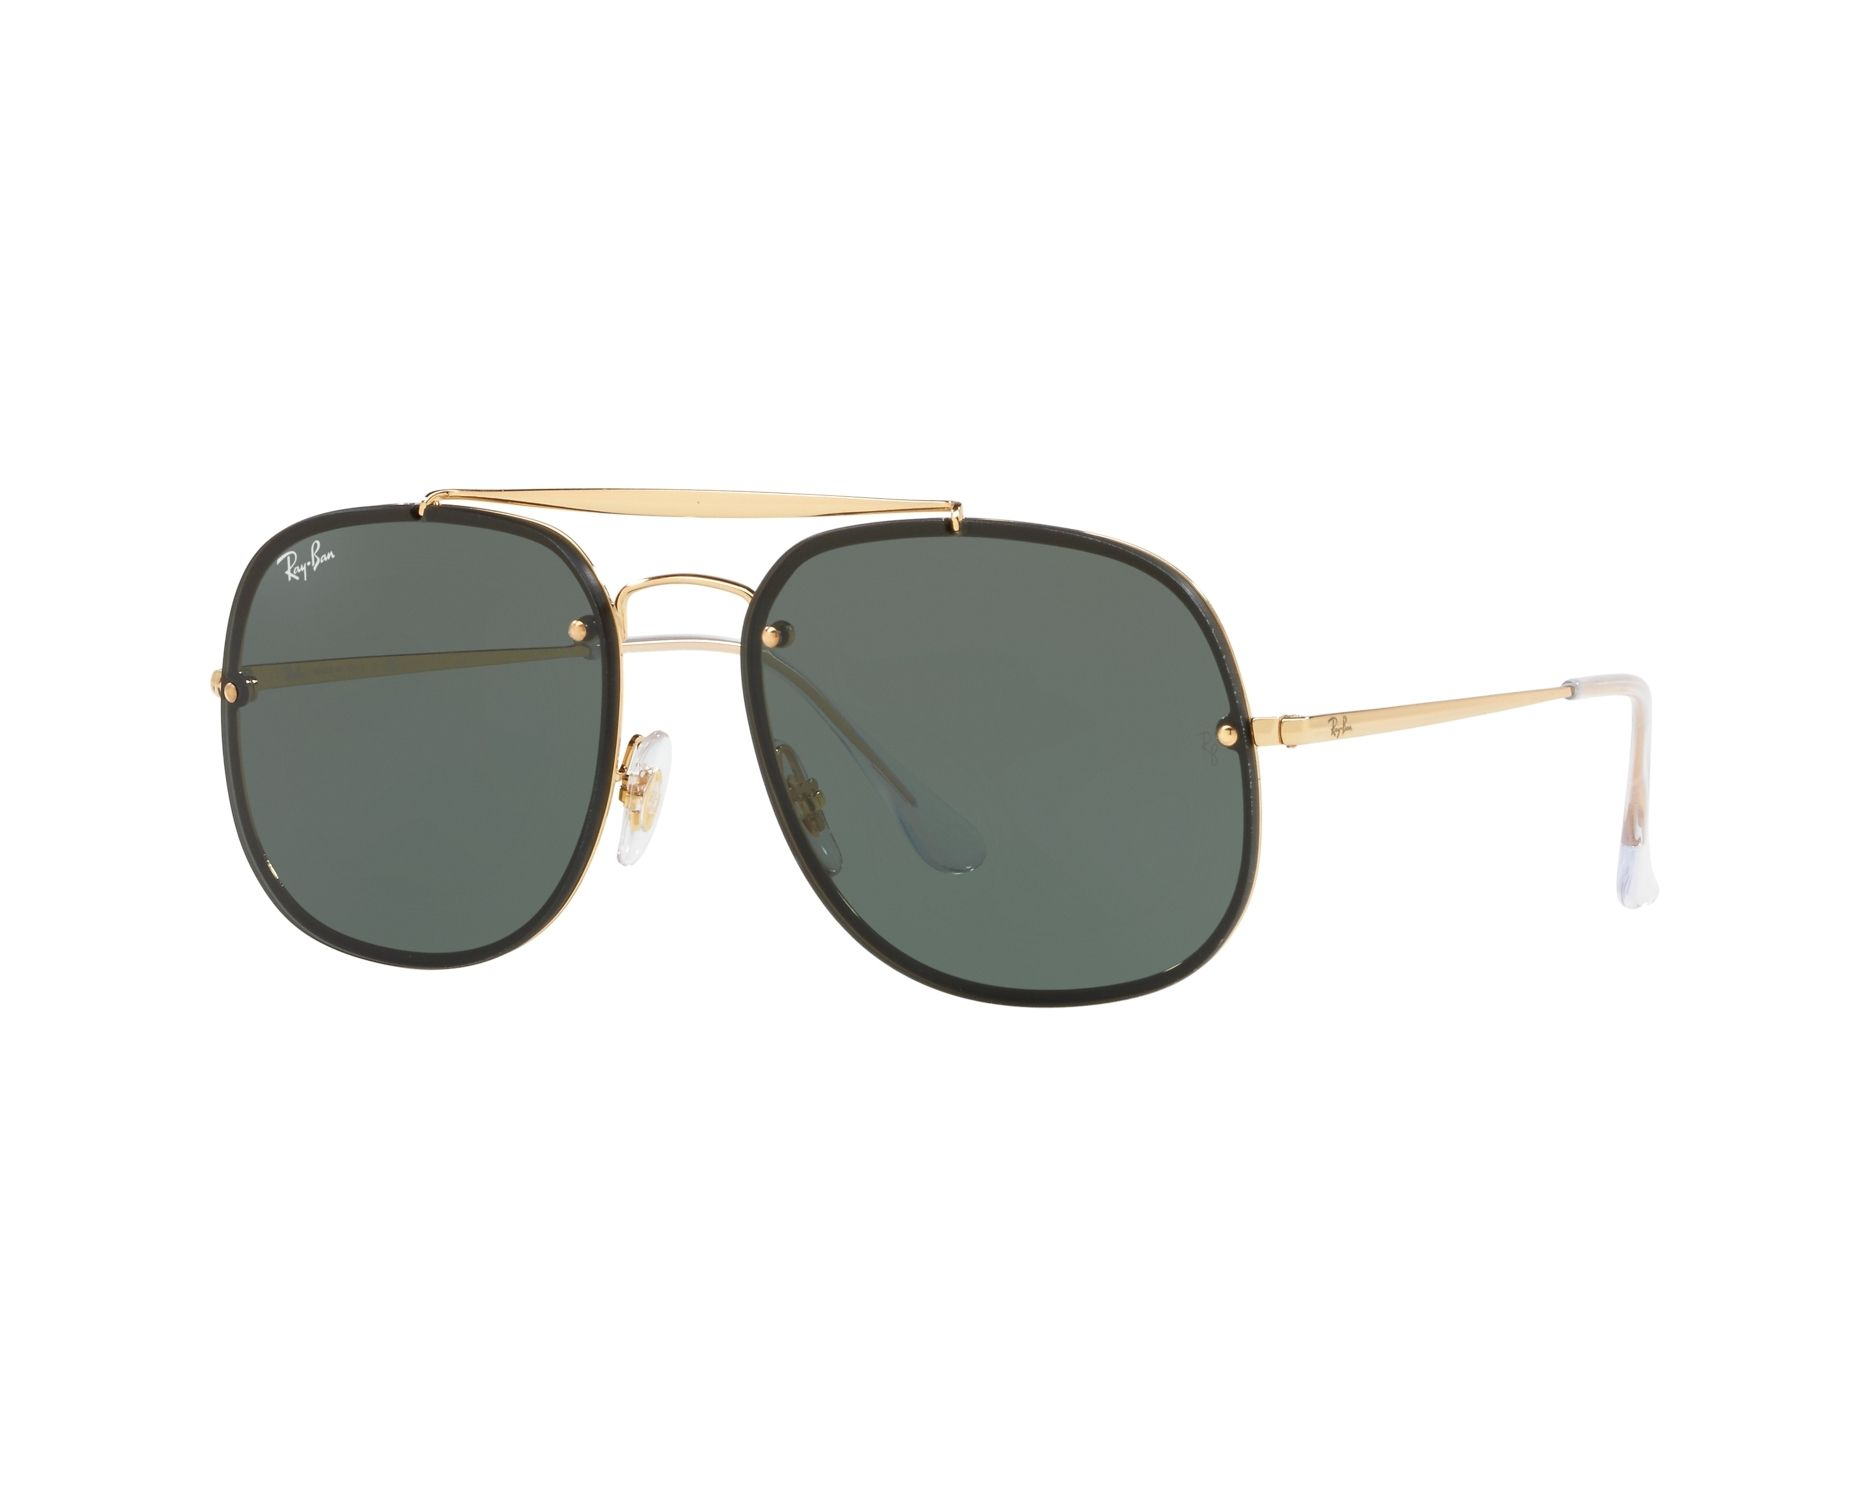 d0e92f3945a Sunglasses Ray-Ban RB-3583-N 905071 58-16 Gold